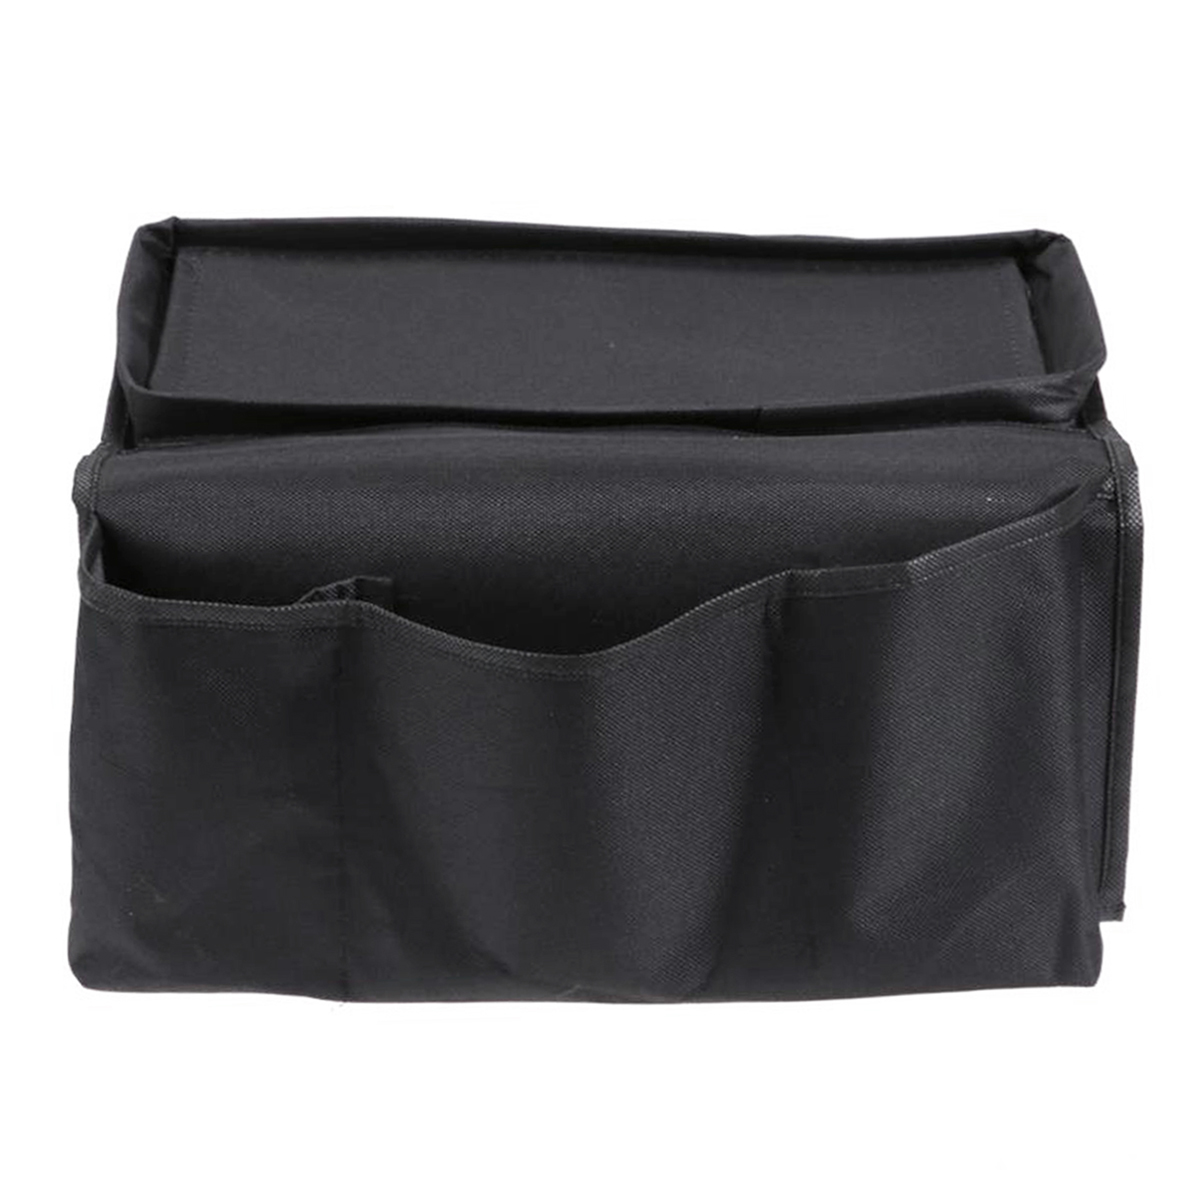 Sofa Couch TV Remote Storage Holder Arm Rest Pouch Bag